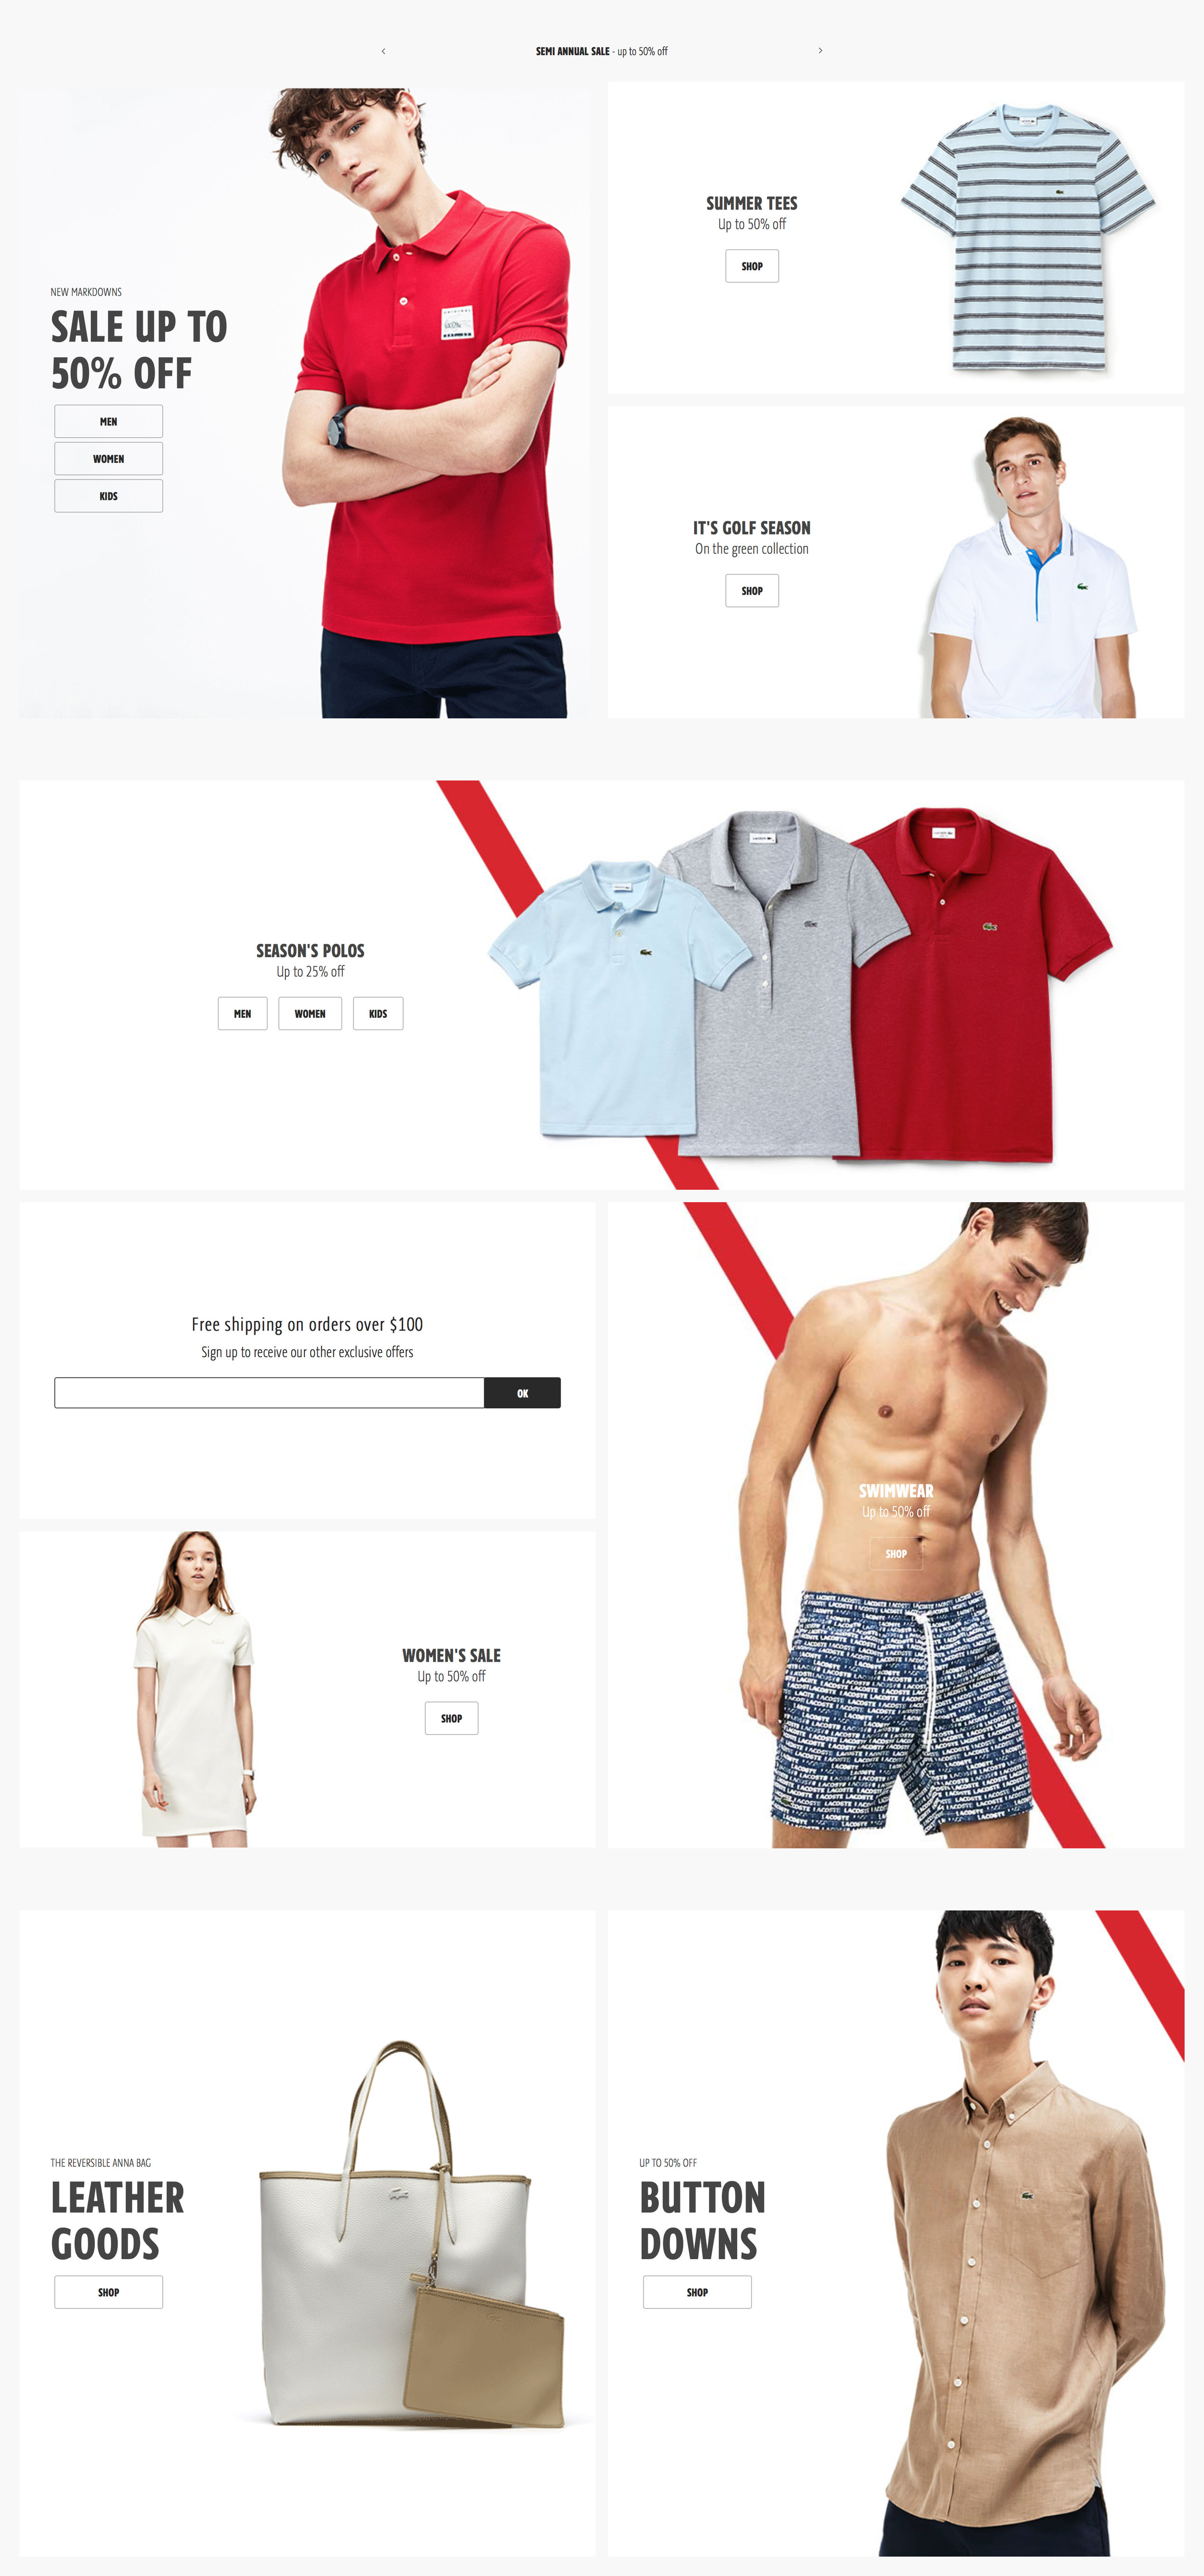 Lacoste_SITE_FULL_PAGE_001.jpg